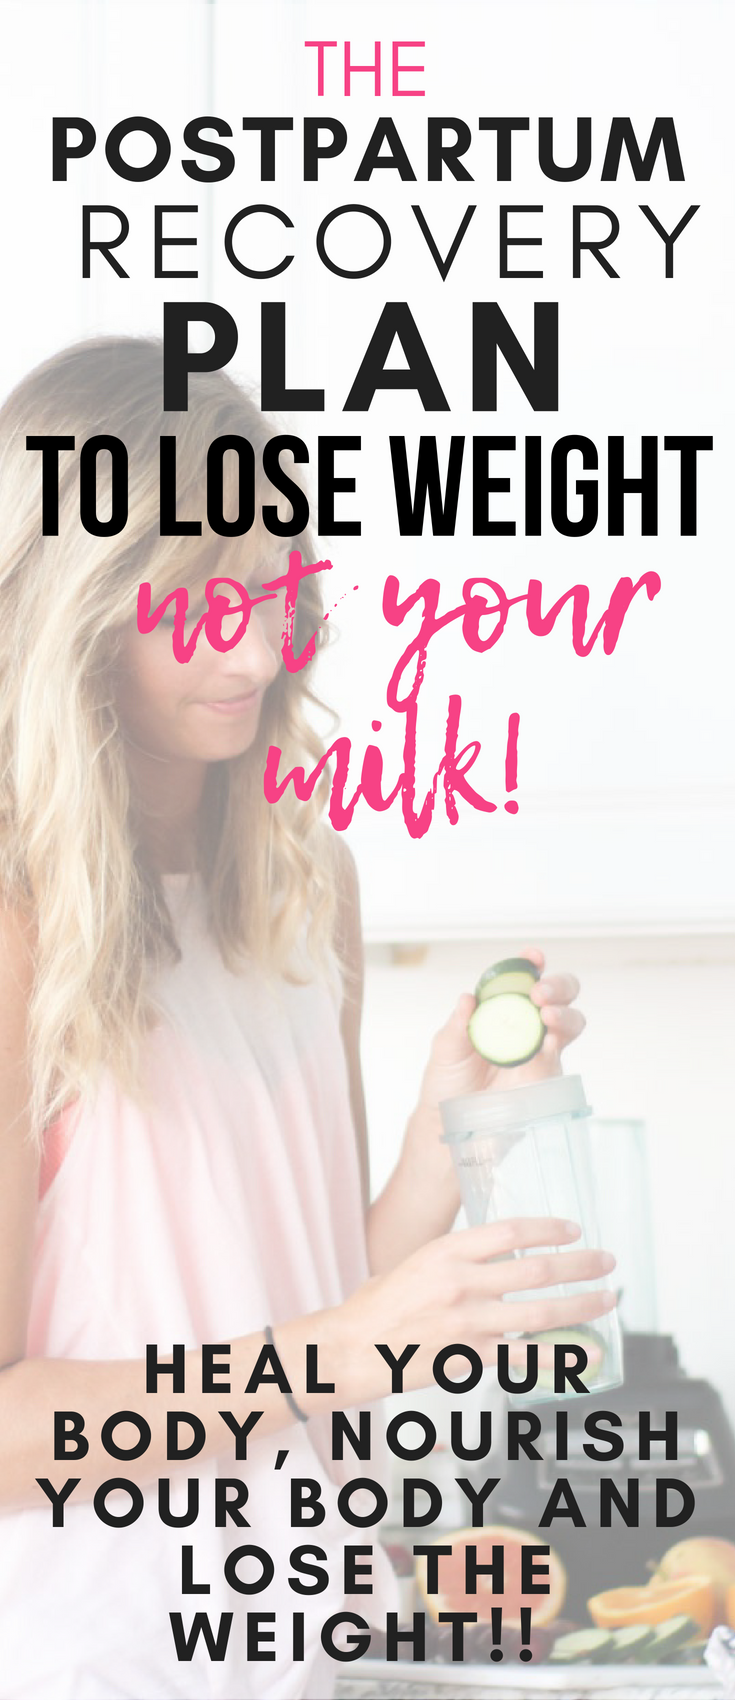 The Postpartum Recovery Plan To Lose Weight Without Affecting Milk Supply | The Postpartum Cure